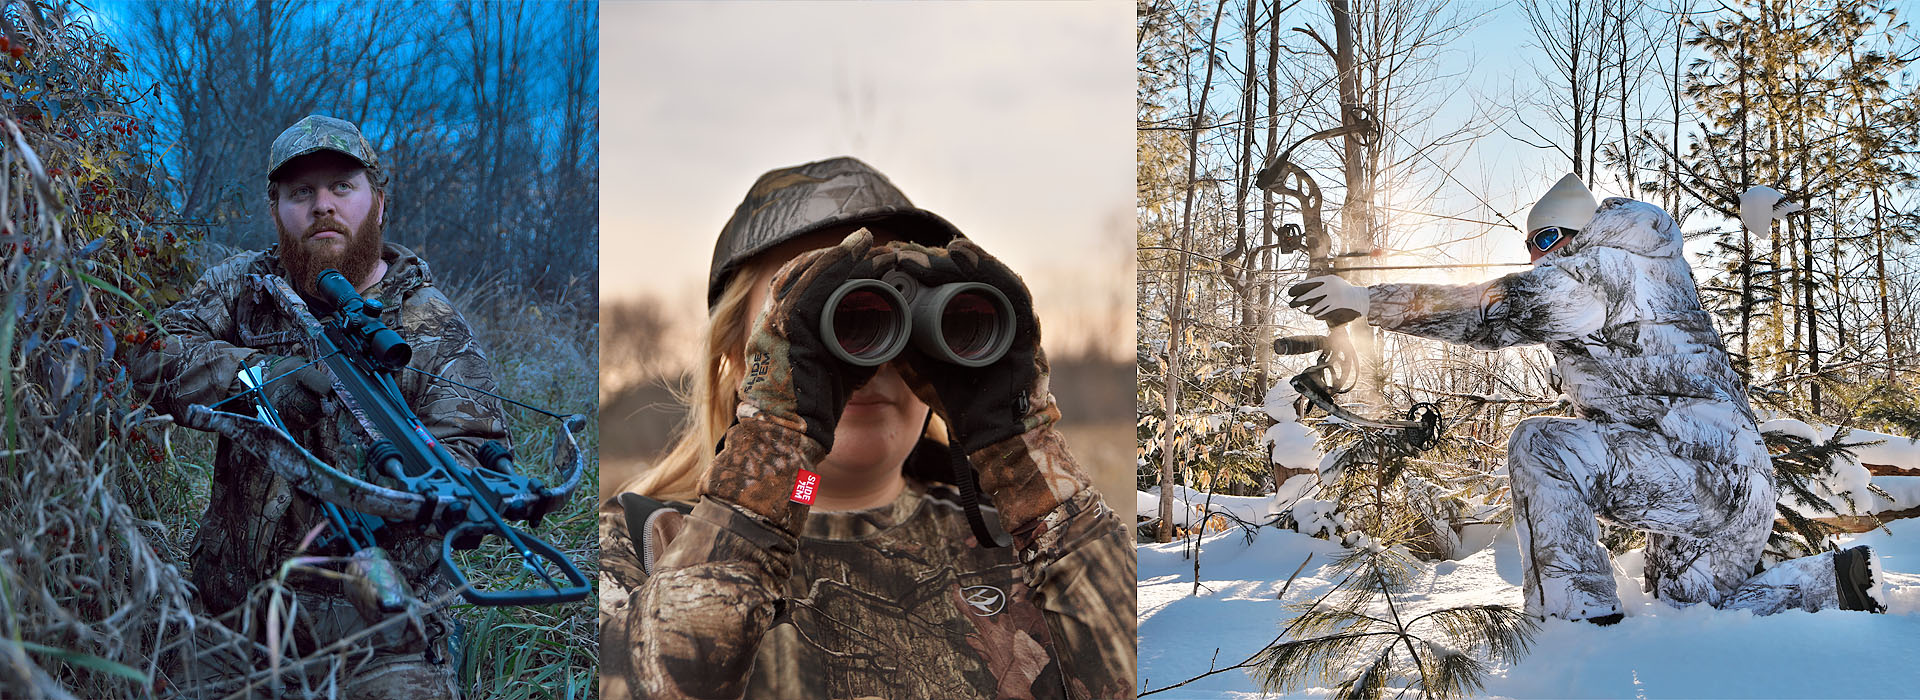 hunting composite image featuring crossbow, binoculars, and compound bow